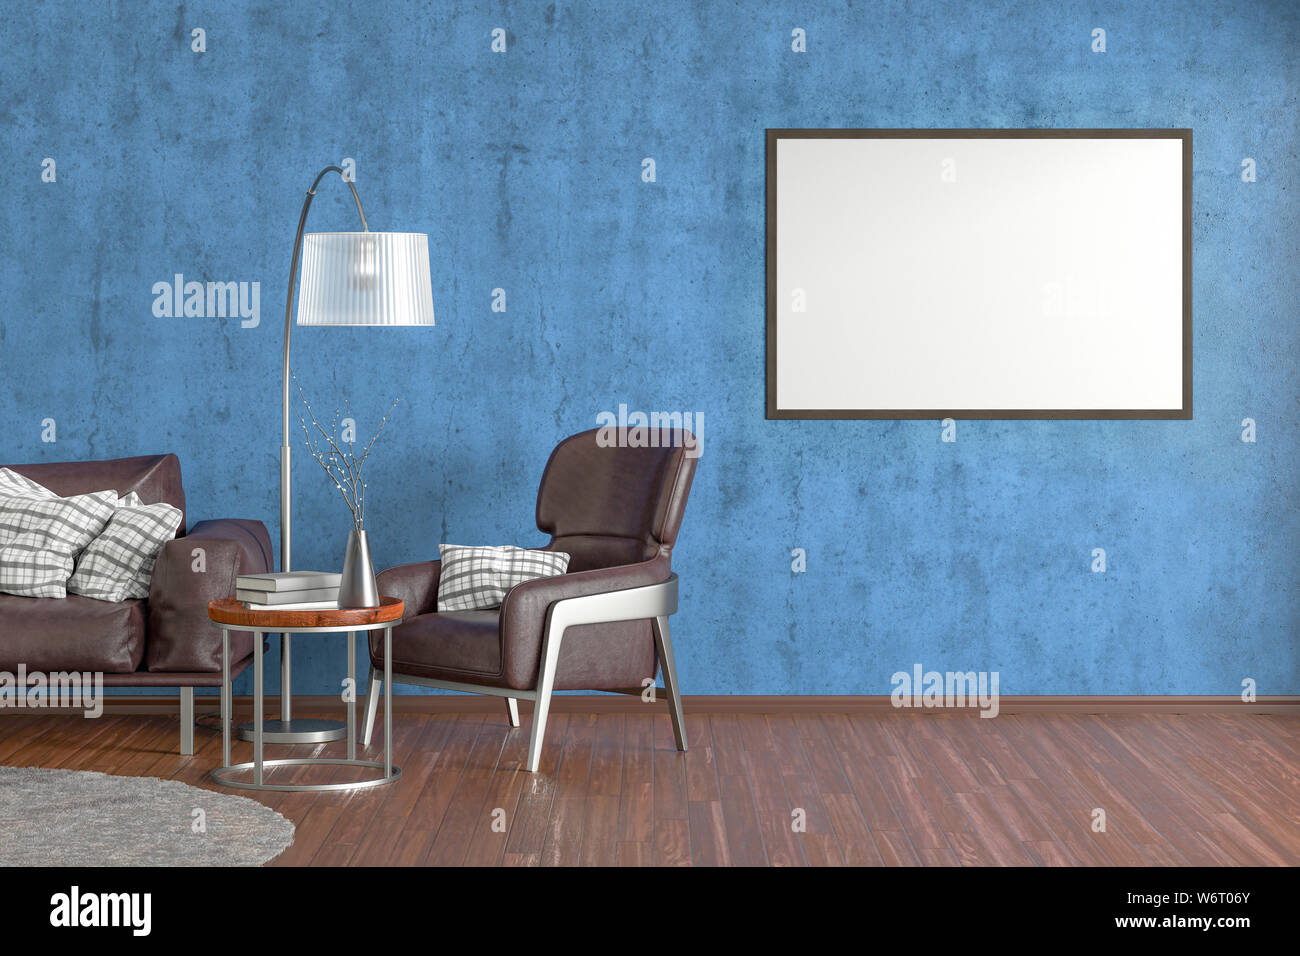 Picture of: Blank Horizontal Poster On Blue Concrete Wall In Interior Of Living Room With Brown Leather Sofa And Armchair Carpet Floor Lamp And Coffee Table On Stock Photo Alamy